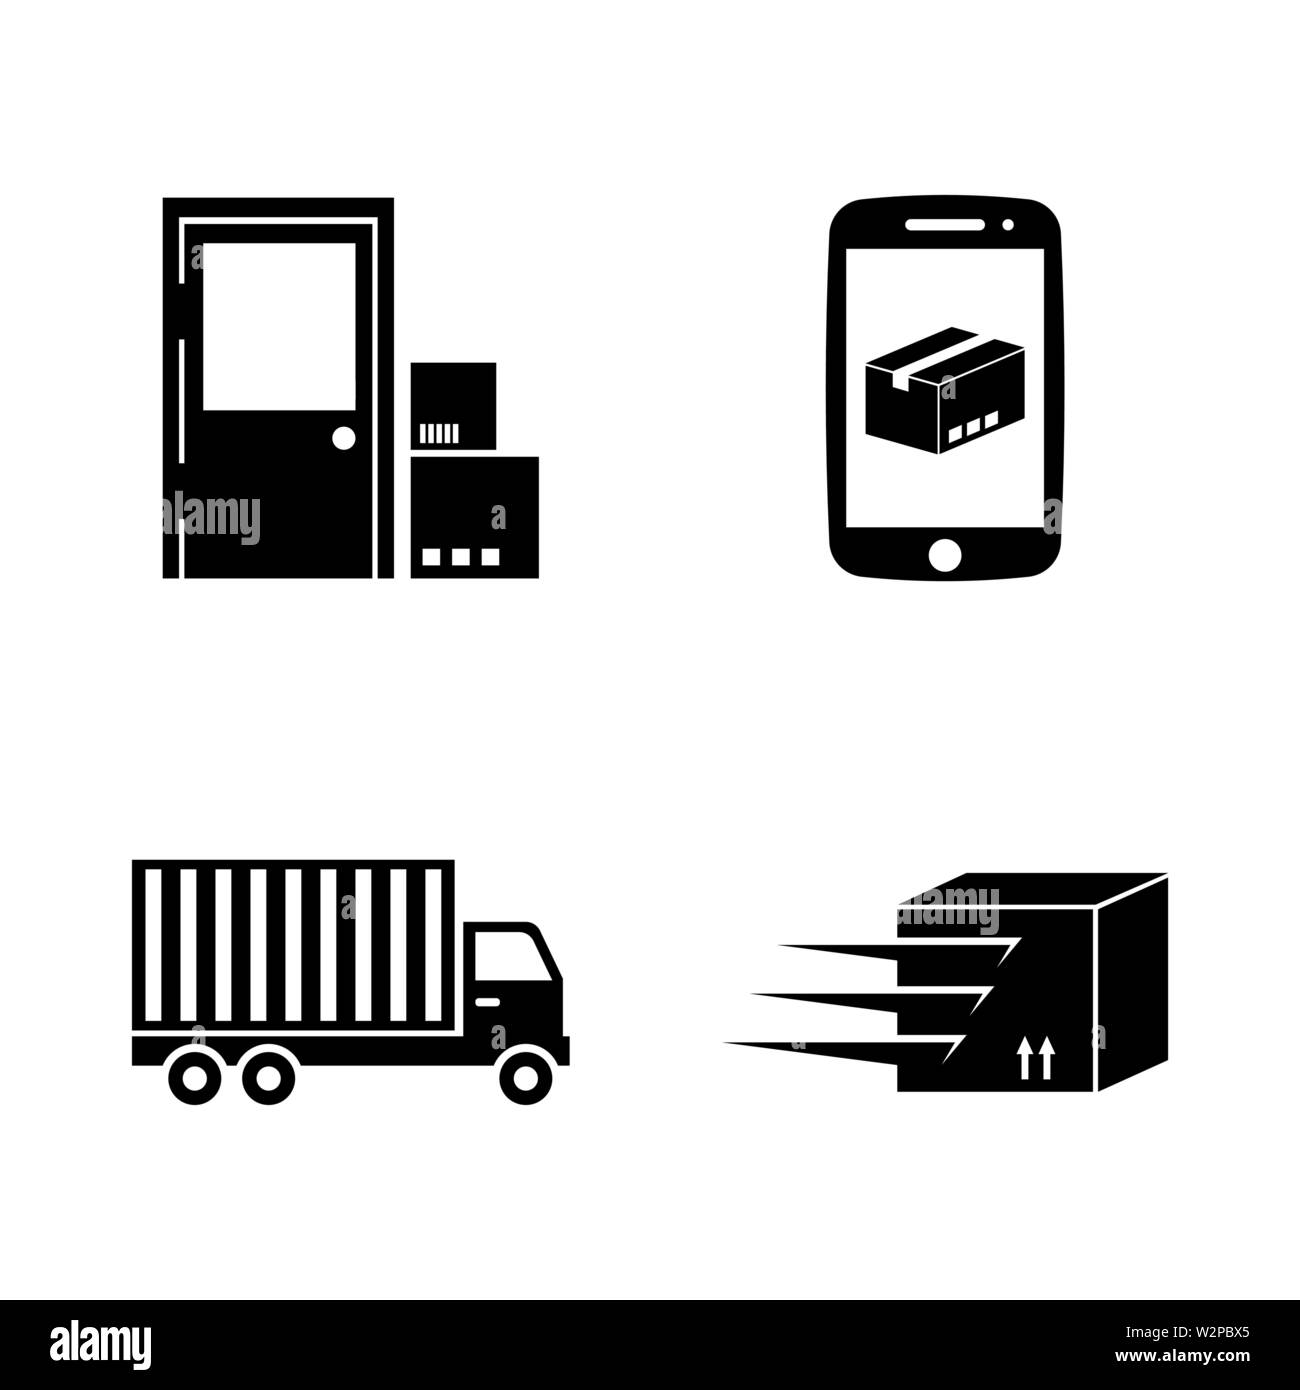 Delivery. Simple Related Vector Icons Set for Video, Mobile Apps, Web Sites, Print Projects and Your Design. Black Flat Illustration on White Backgrou - Stock Image